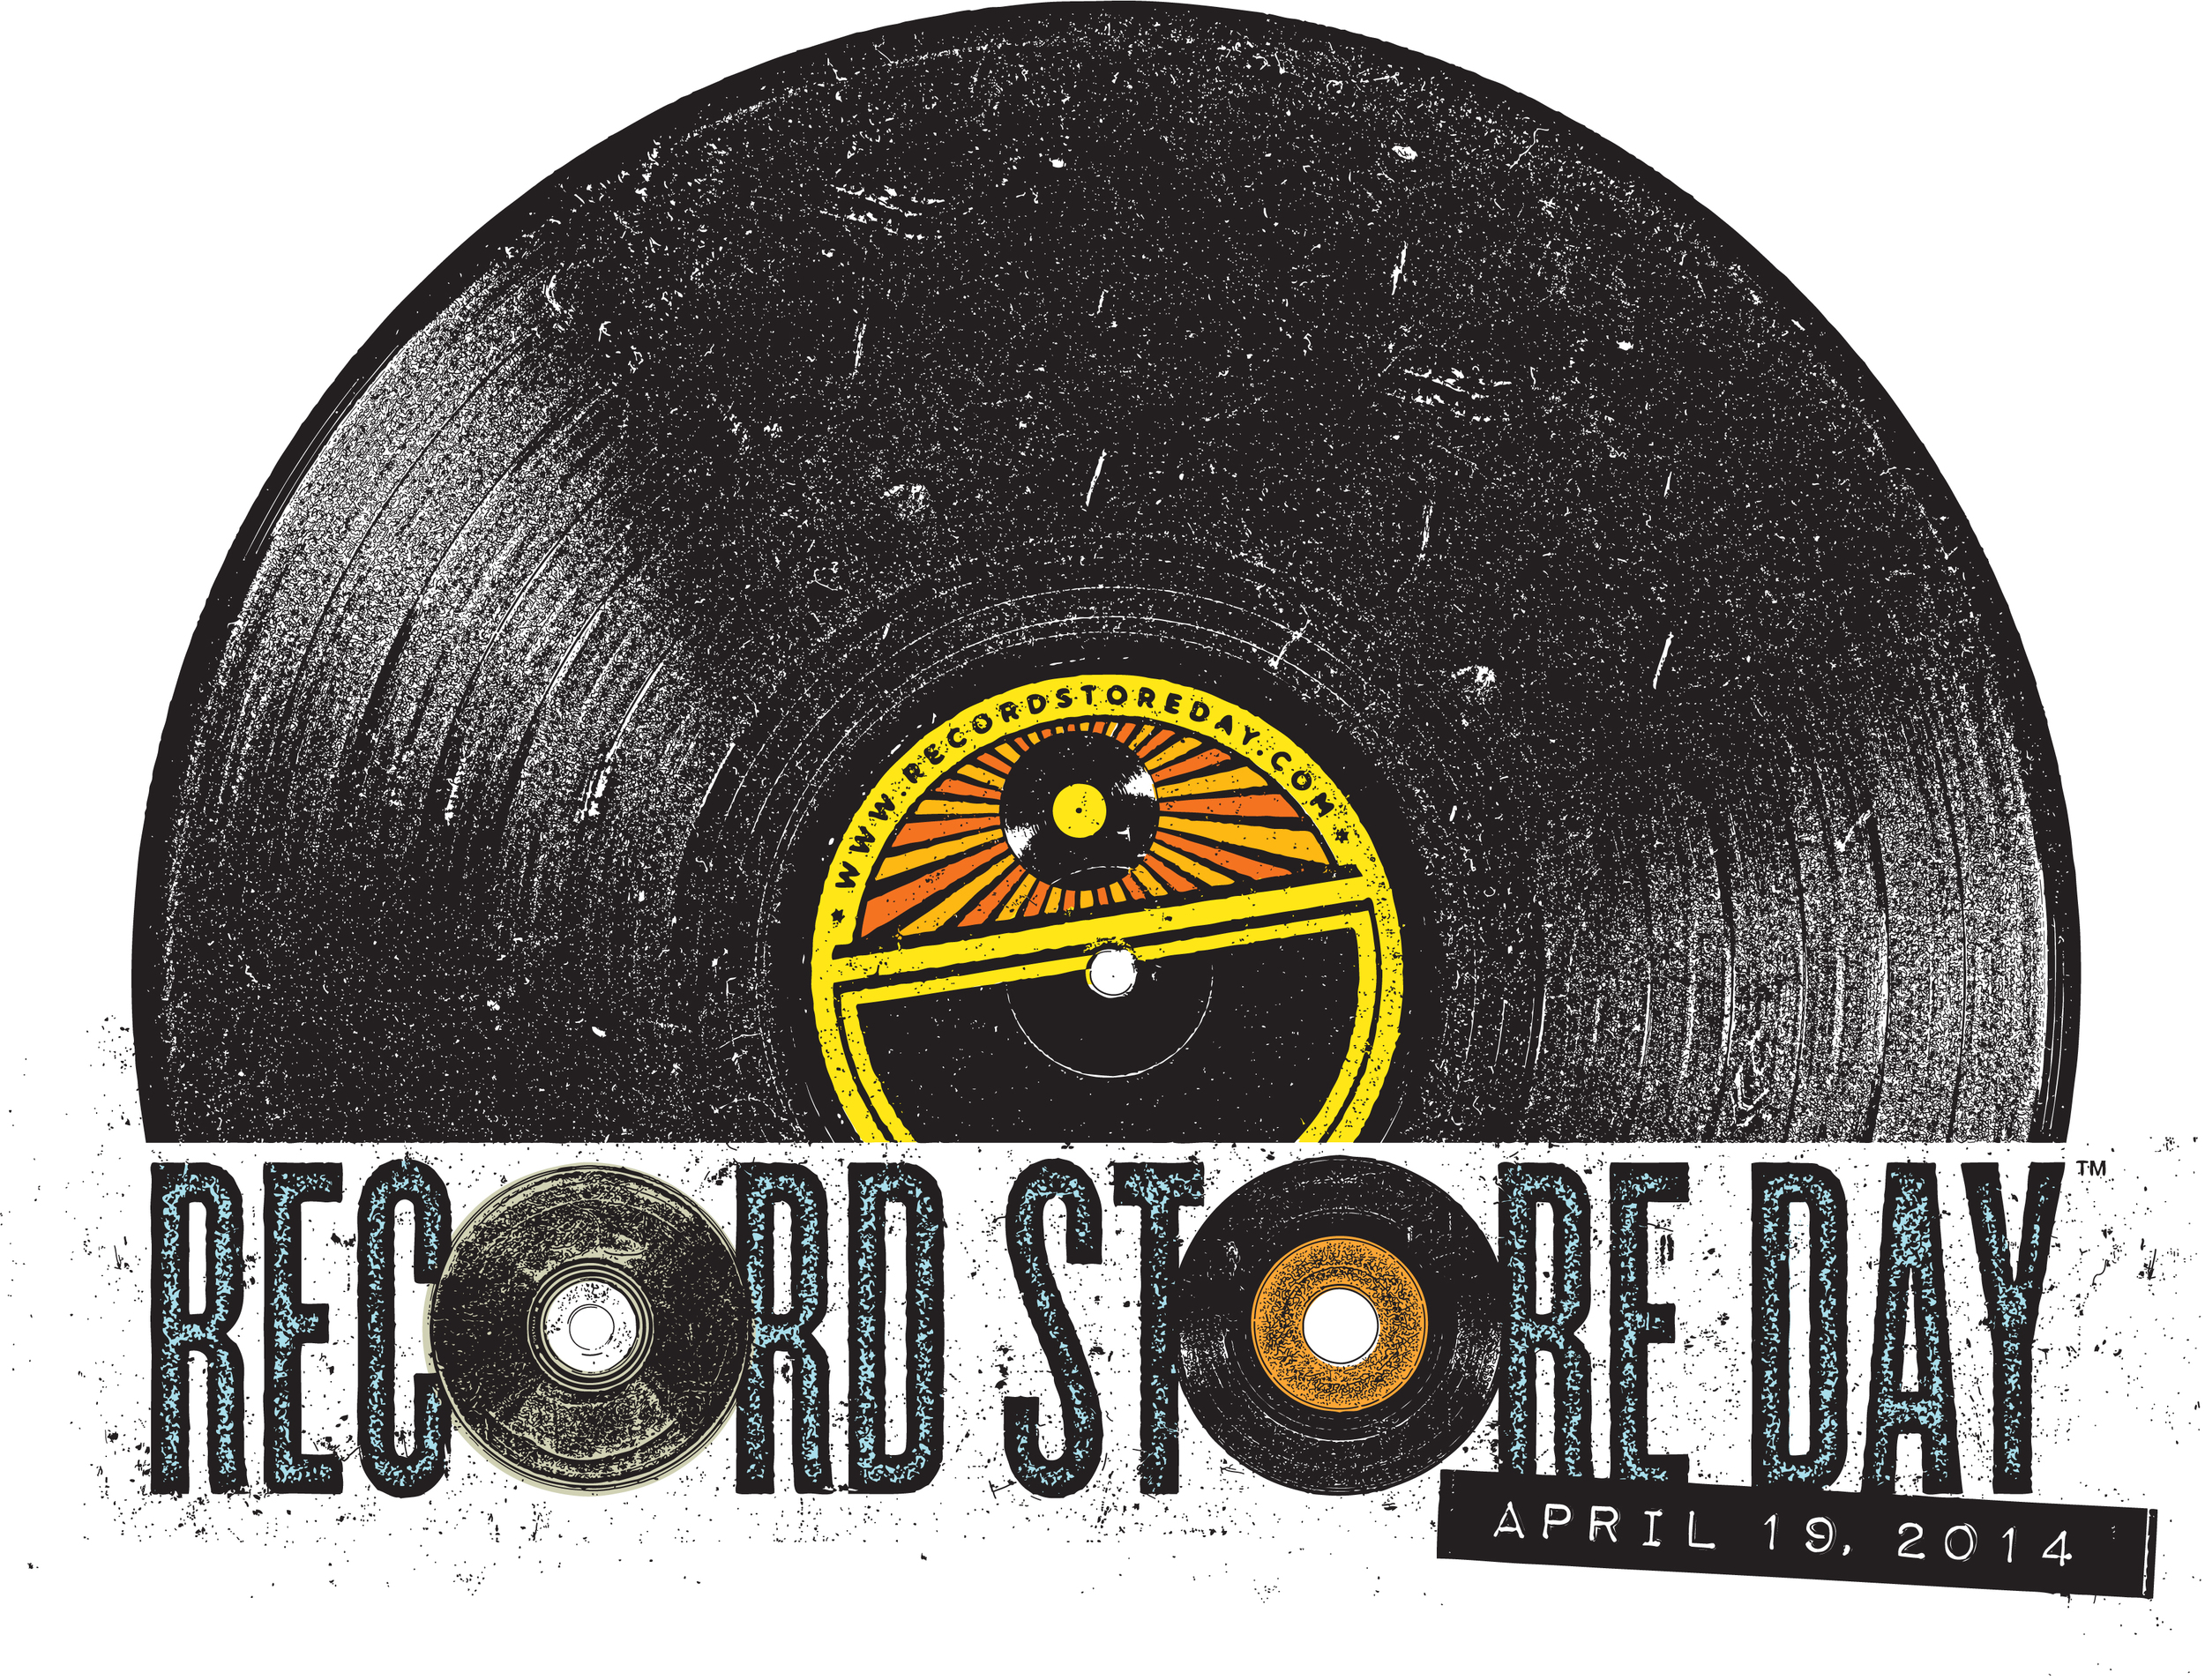 Exclusive vinyl releases by the following artists will be available @ Gold Million Records on Record Store Day, Saturday April 19. Quantities are limited, no reserves, 1st come-1st served, doors open 10:30AM.    Allman Brothers, Coldplay, Grateful Dead, Jimi Hendrix, David Bowie, The Cure, Dinosaur Jr, Devo, The Flaming Lips, Johnny Cash, Fleetwood Mac, Green Day, Husker Du, J Spaceman & Kid Millions, Pixies, Mazzy Star, Joy Division, Motorhead, Nirvana, The Pogues w/Joe Strummer, Ramones, Soundgarden, Bruce Springsteen, Johnny Winter, Gram Parsons, Steve Earle, The Velvet Underground, The Yardbirds, R.E.M., 311, Jerry Garcia, The Specials, The Stranglers, Fela Kuti, Sun Ra, Tears For Fears, Garbage, Creedence Clearwater Revival, Jaco Pastorius, Sharon Jones, Joan Jett, Jimmy Page & Black Crowes, Frank Zappa, The Zombies, Newport Folk Festival (w/Dylan), Death Cab For Cutie, Paramore, Nina Persson, Wesley Stace, John Oates, Mike Watt, Django Django, Pantera, The Idle Race, Jay-Z & Linkin Park, plus soundtracks for The Pink Panther (pink vinyl) and Wizard of Oz (on yellow wax).